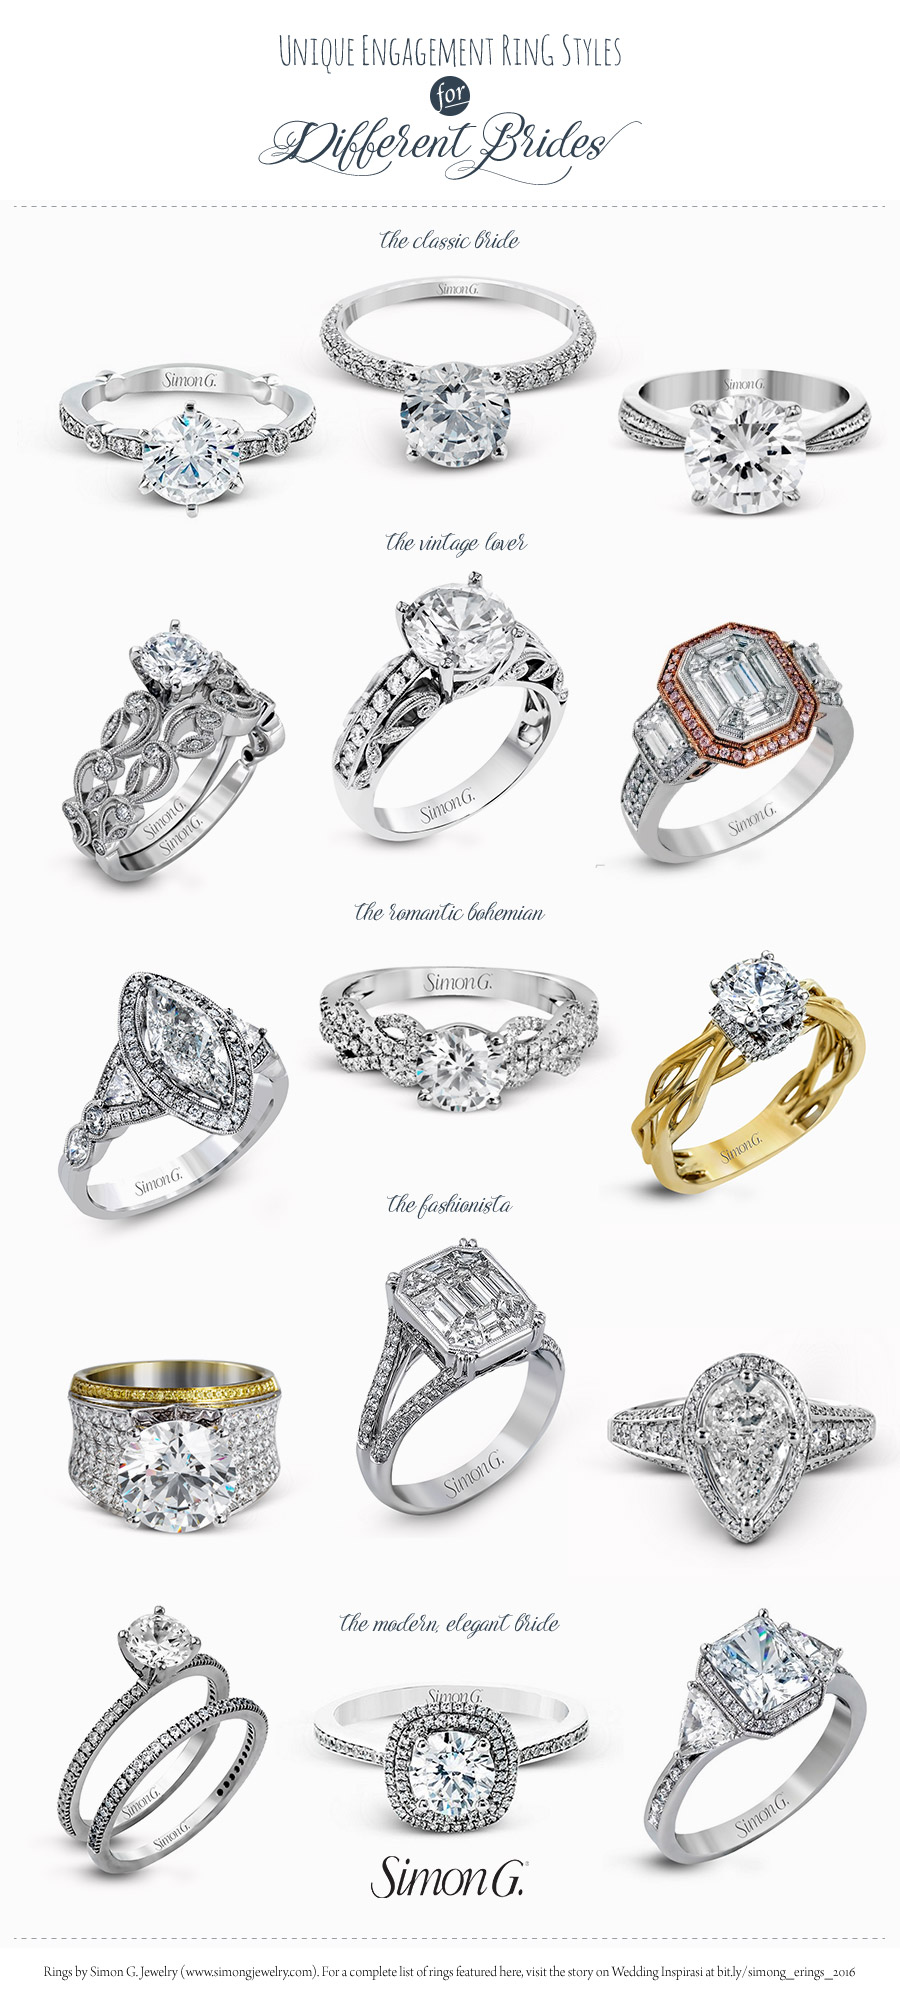 simon g engagement ring styles for every bride wedding With different wedding ring styles